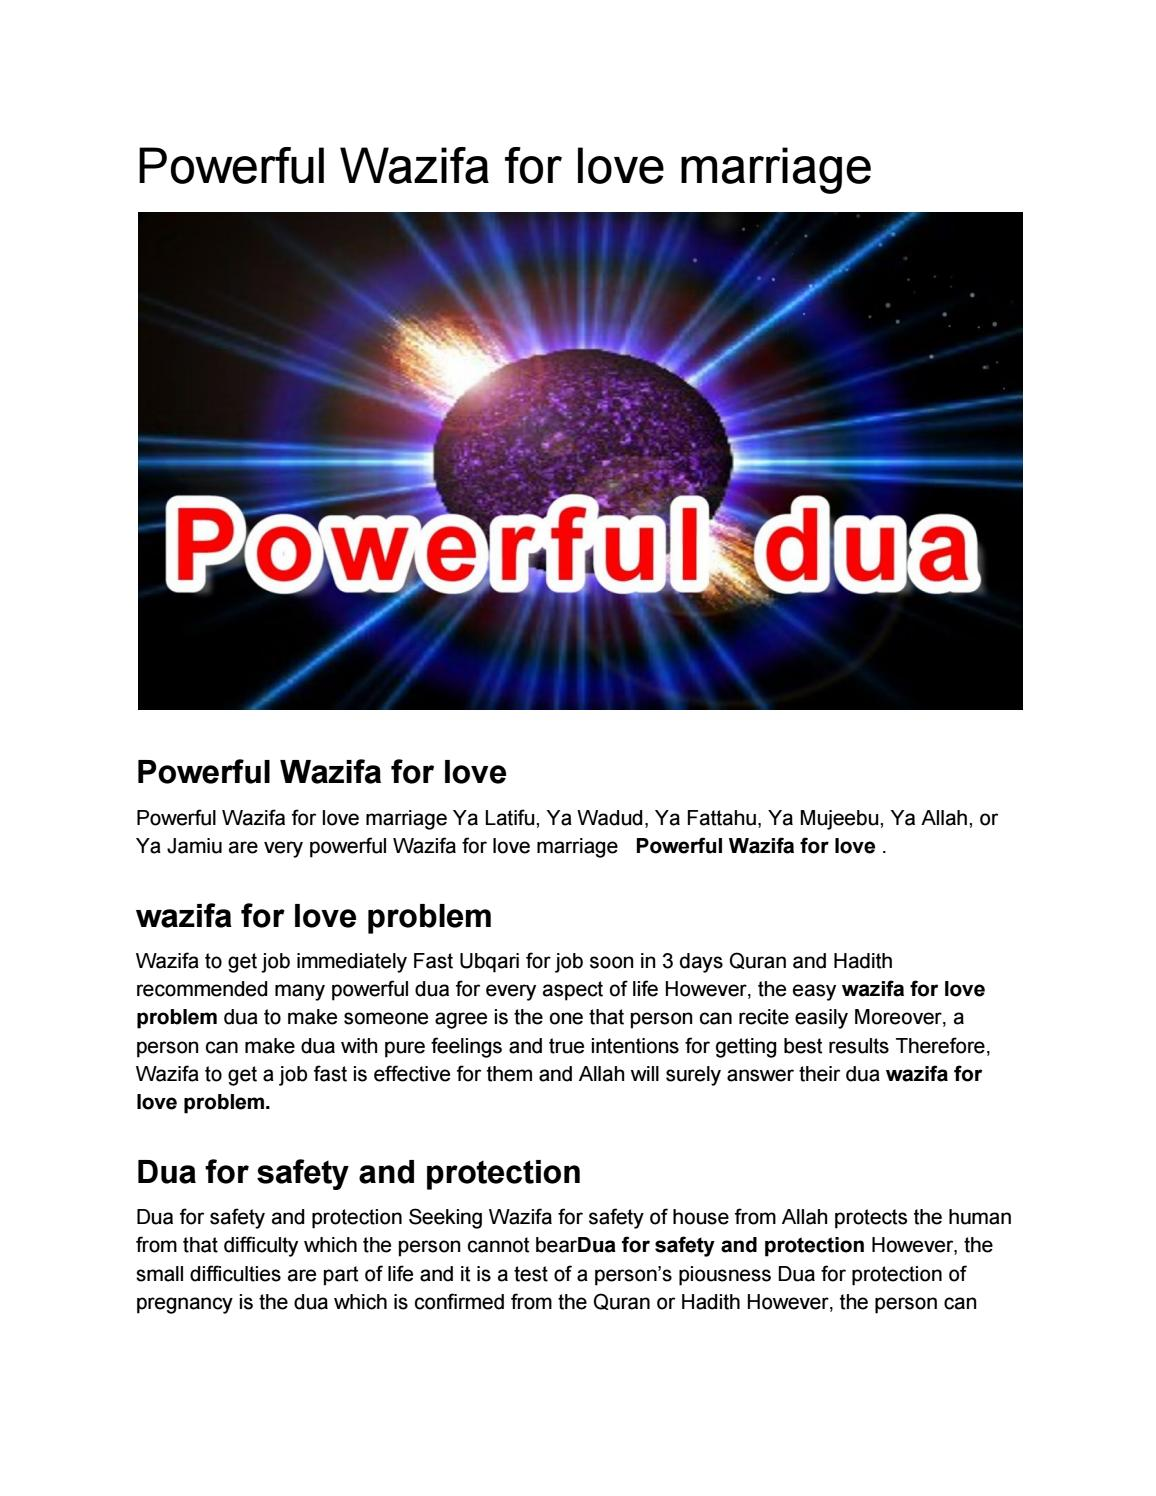 Powerful Wazifa for love marriage by duacentre - issuu